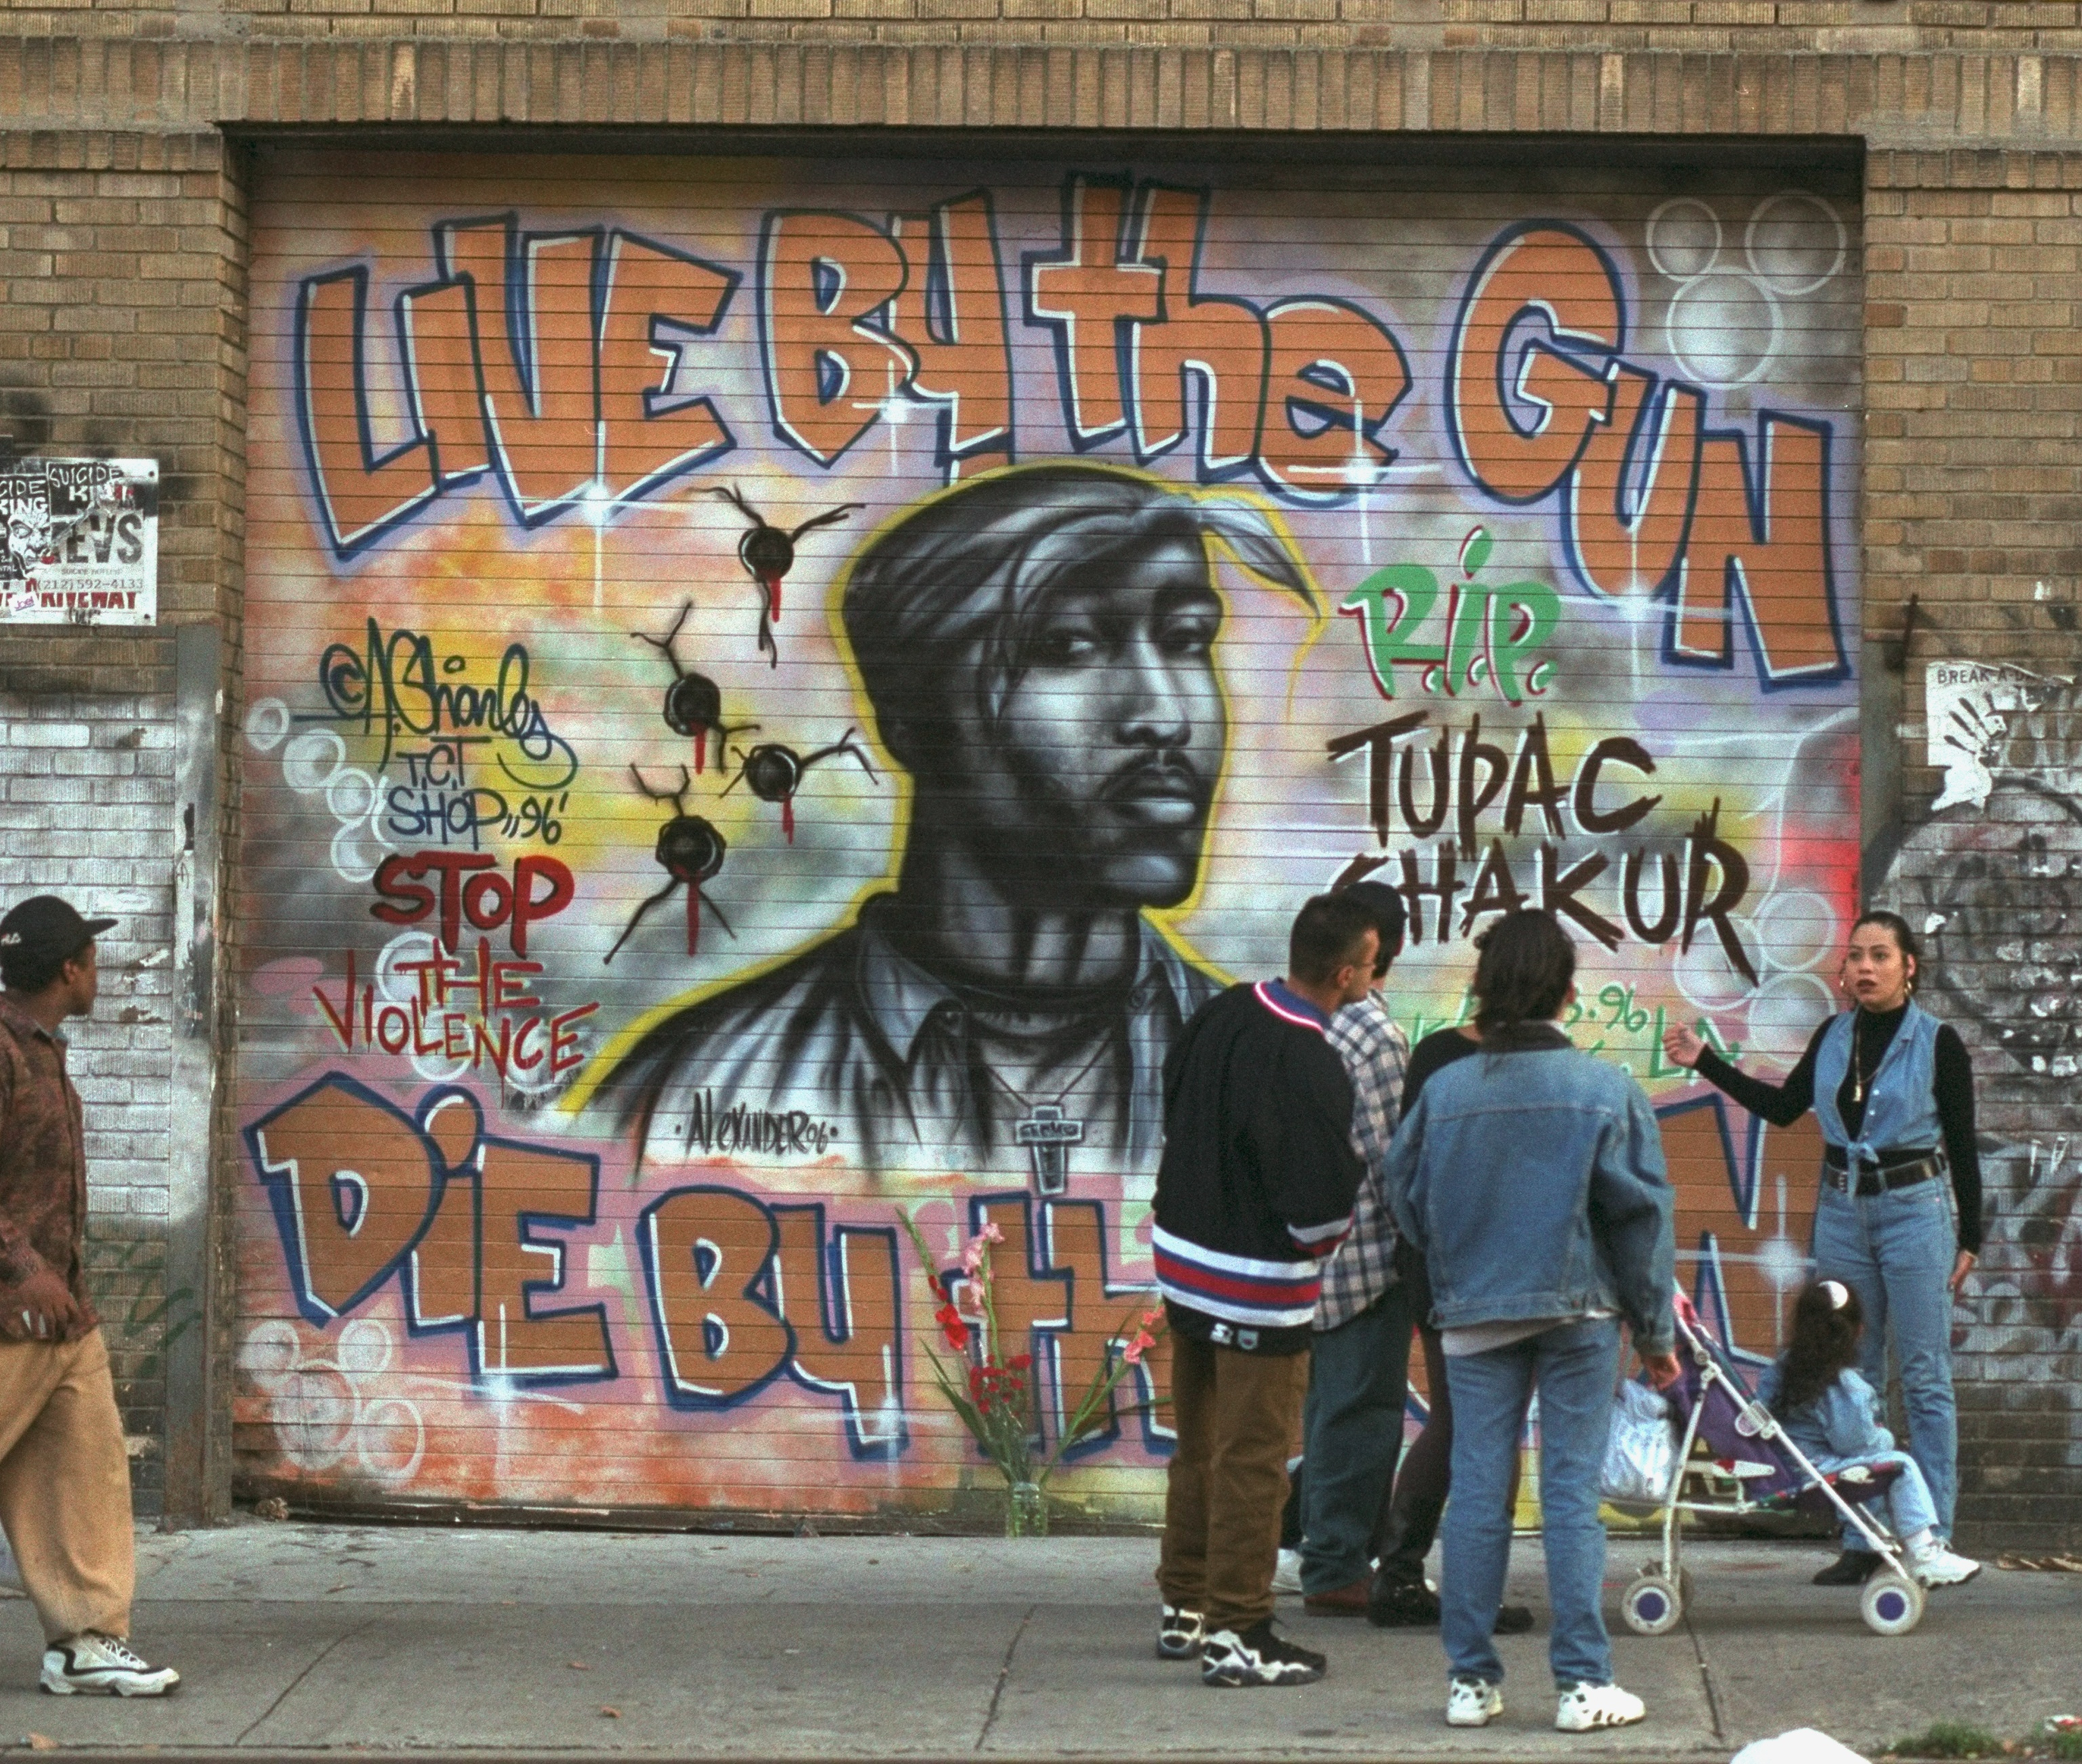 A memorial to the late tupac shakur on the lower east side photo by clarence davis ny daily news archive via getty images